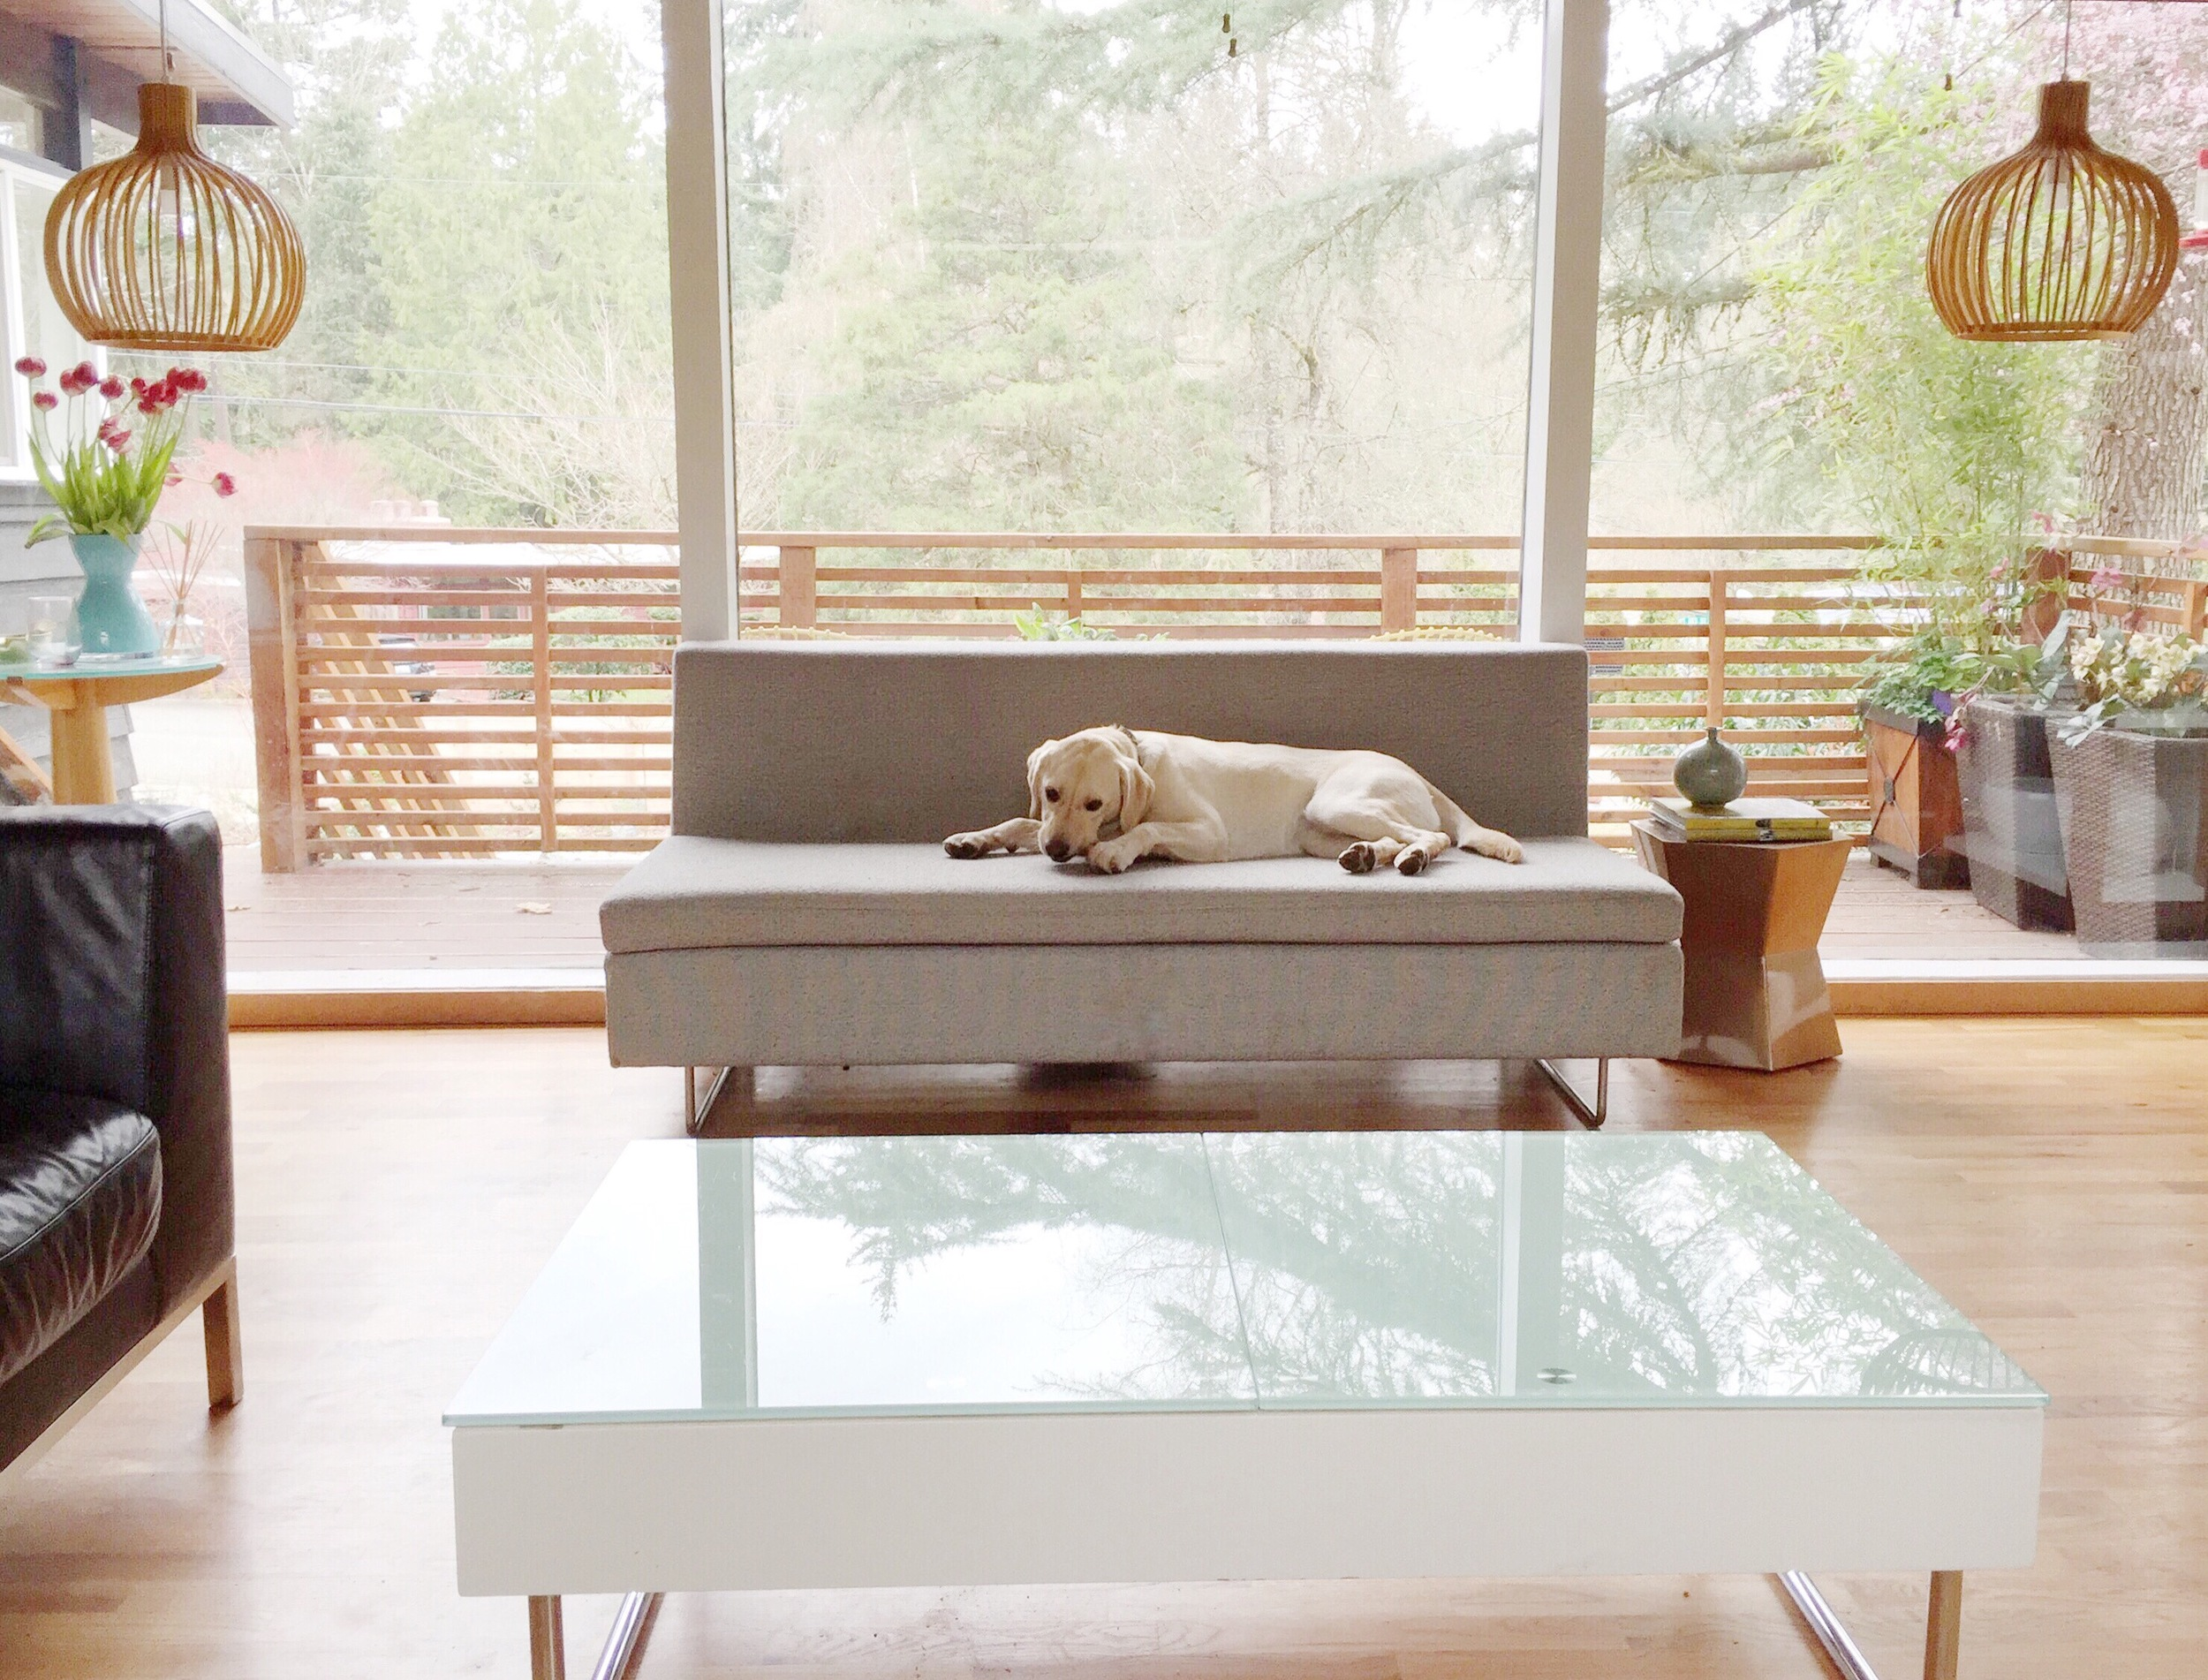 I can't pick my favourite element in this room, the puppy...the light fixtures...the wall of windows...or the view into the yard? It's all so good!!!